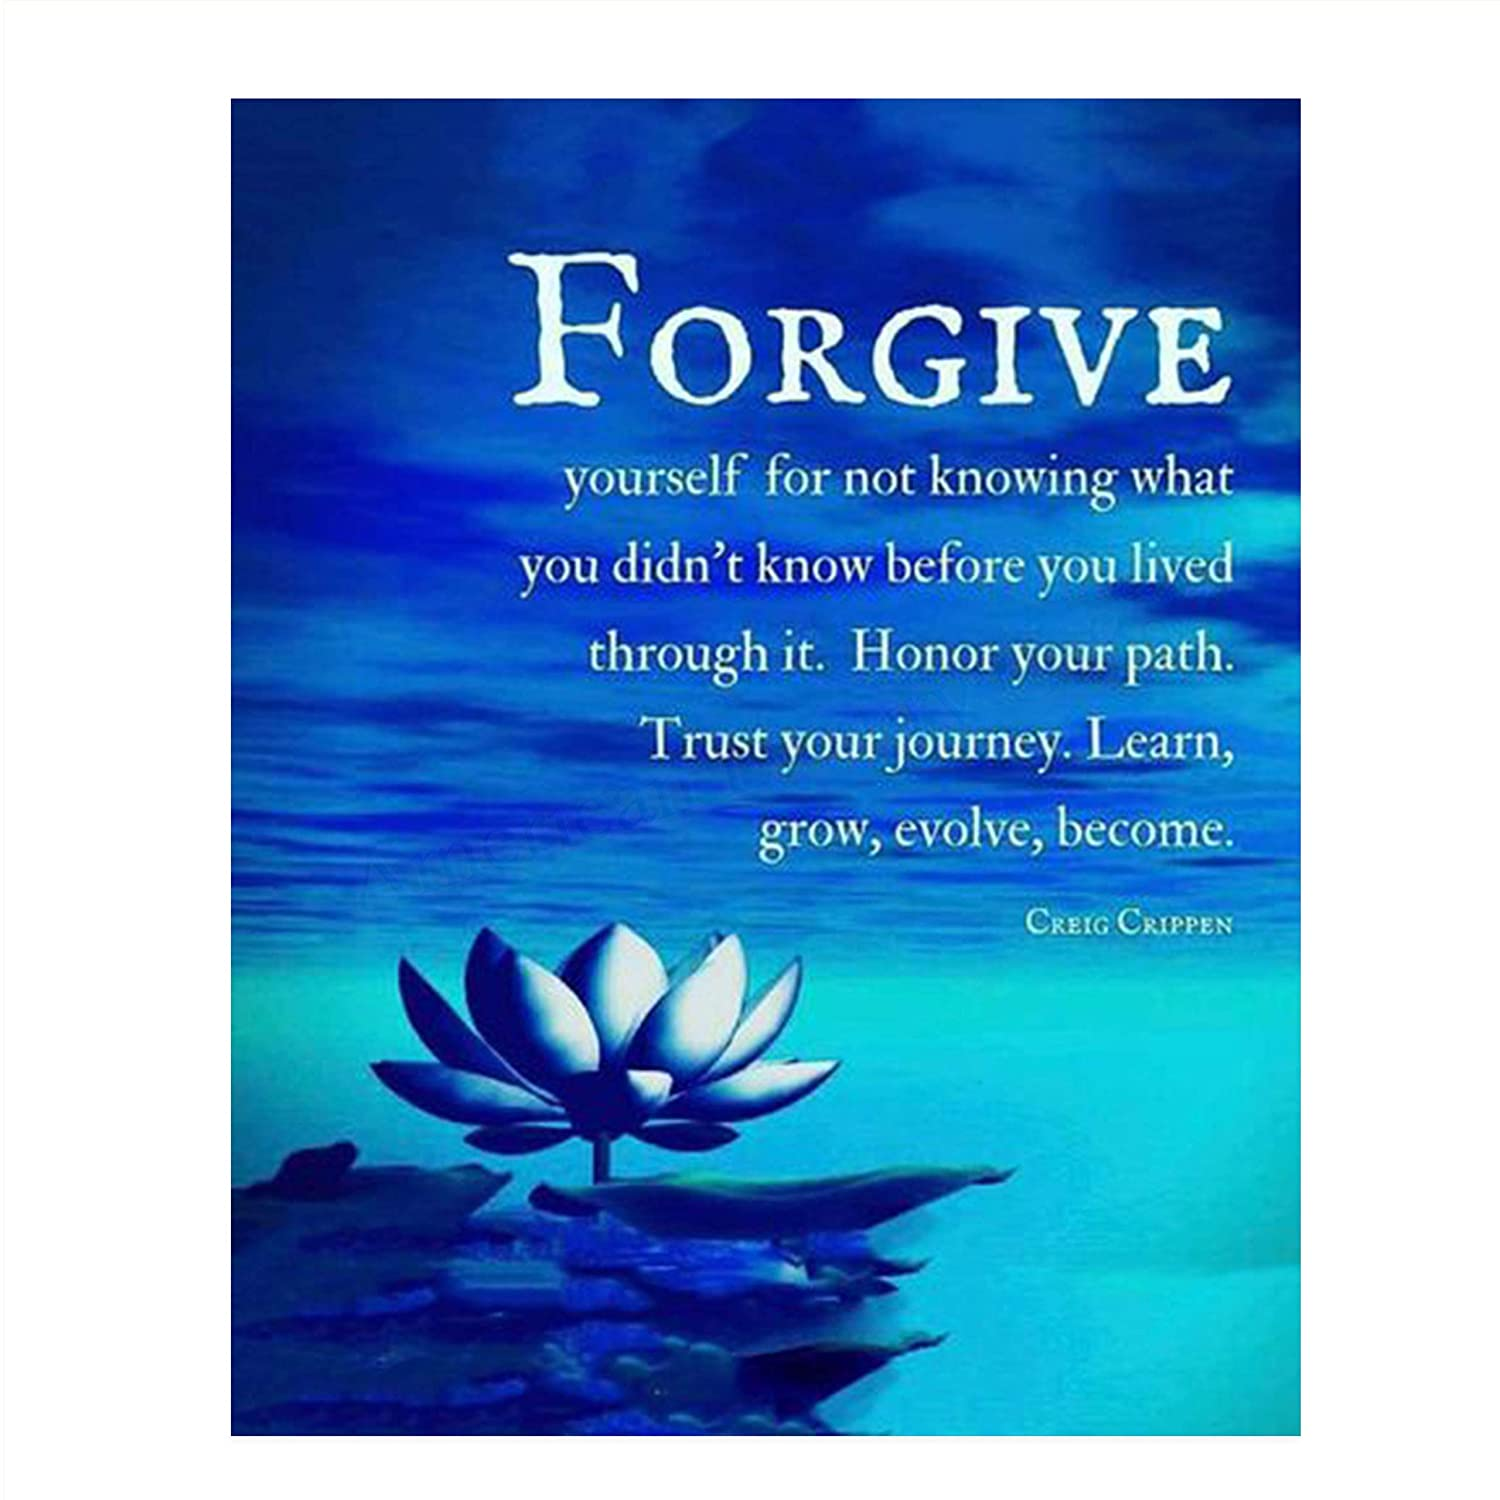 """Forgive Yourself- Learn, Grow & Become""- Creig Crippen Quotes Wall Art - 8 x 10"" Modern Art-Zen Print- Ready to Frame. Inspirational Home-Studio-Office Décor. Life Lesson to Honor & Trust Self!"